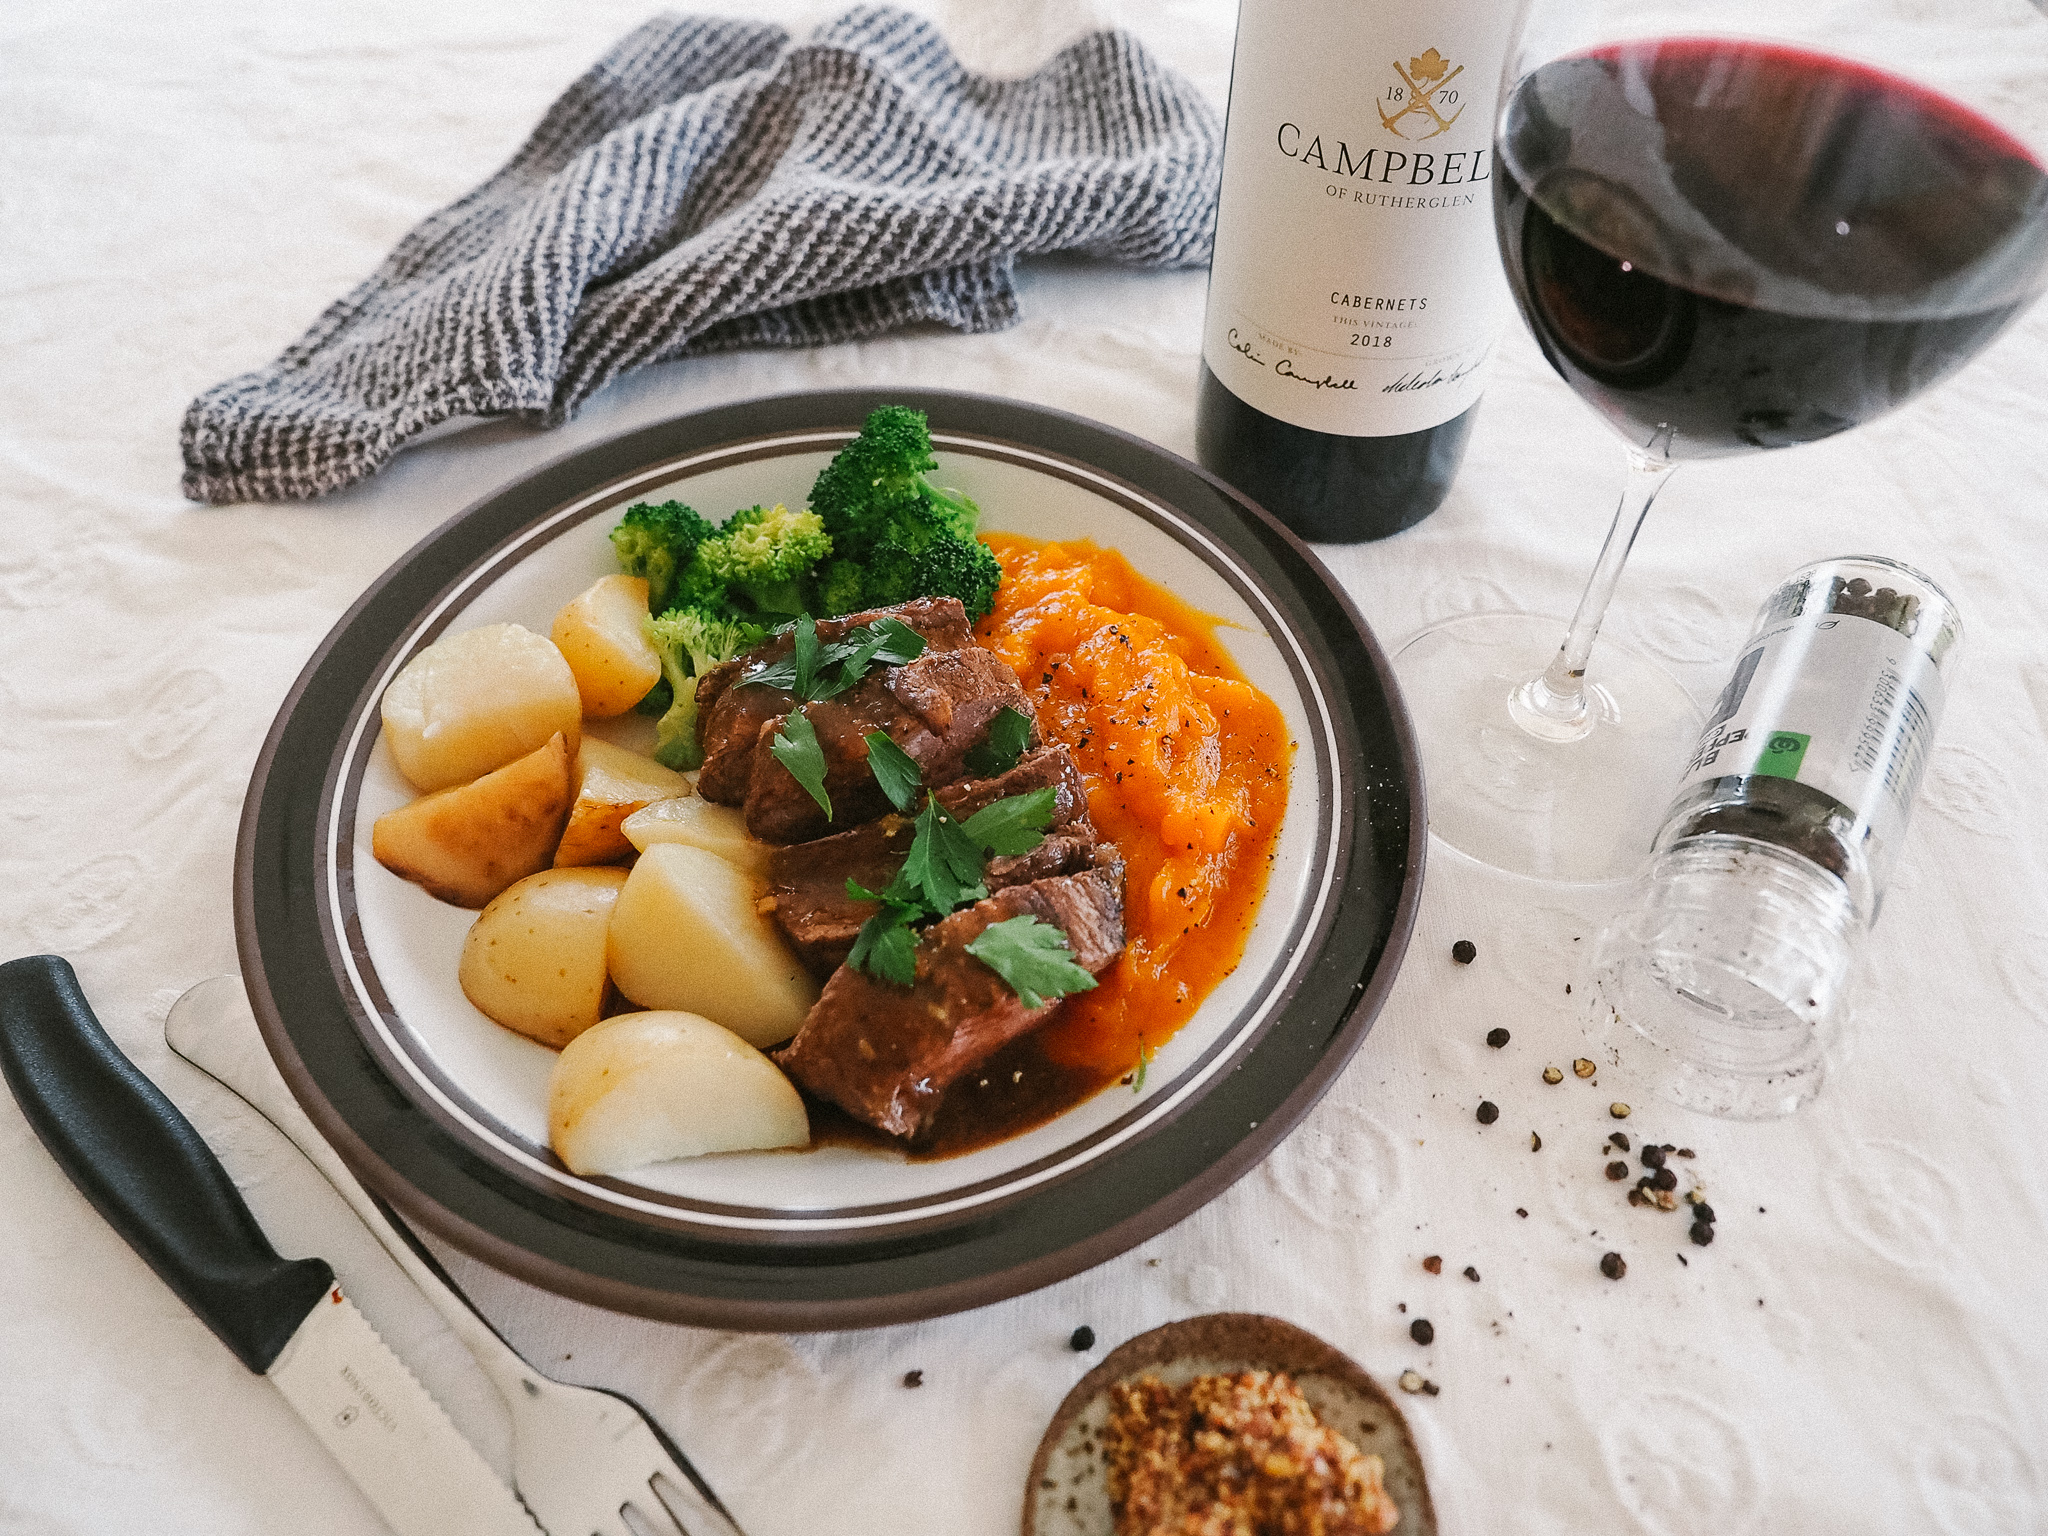 Tuscan Beef Steak with Vegetables